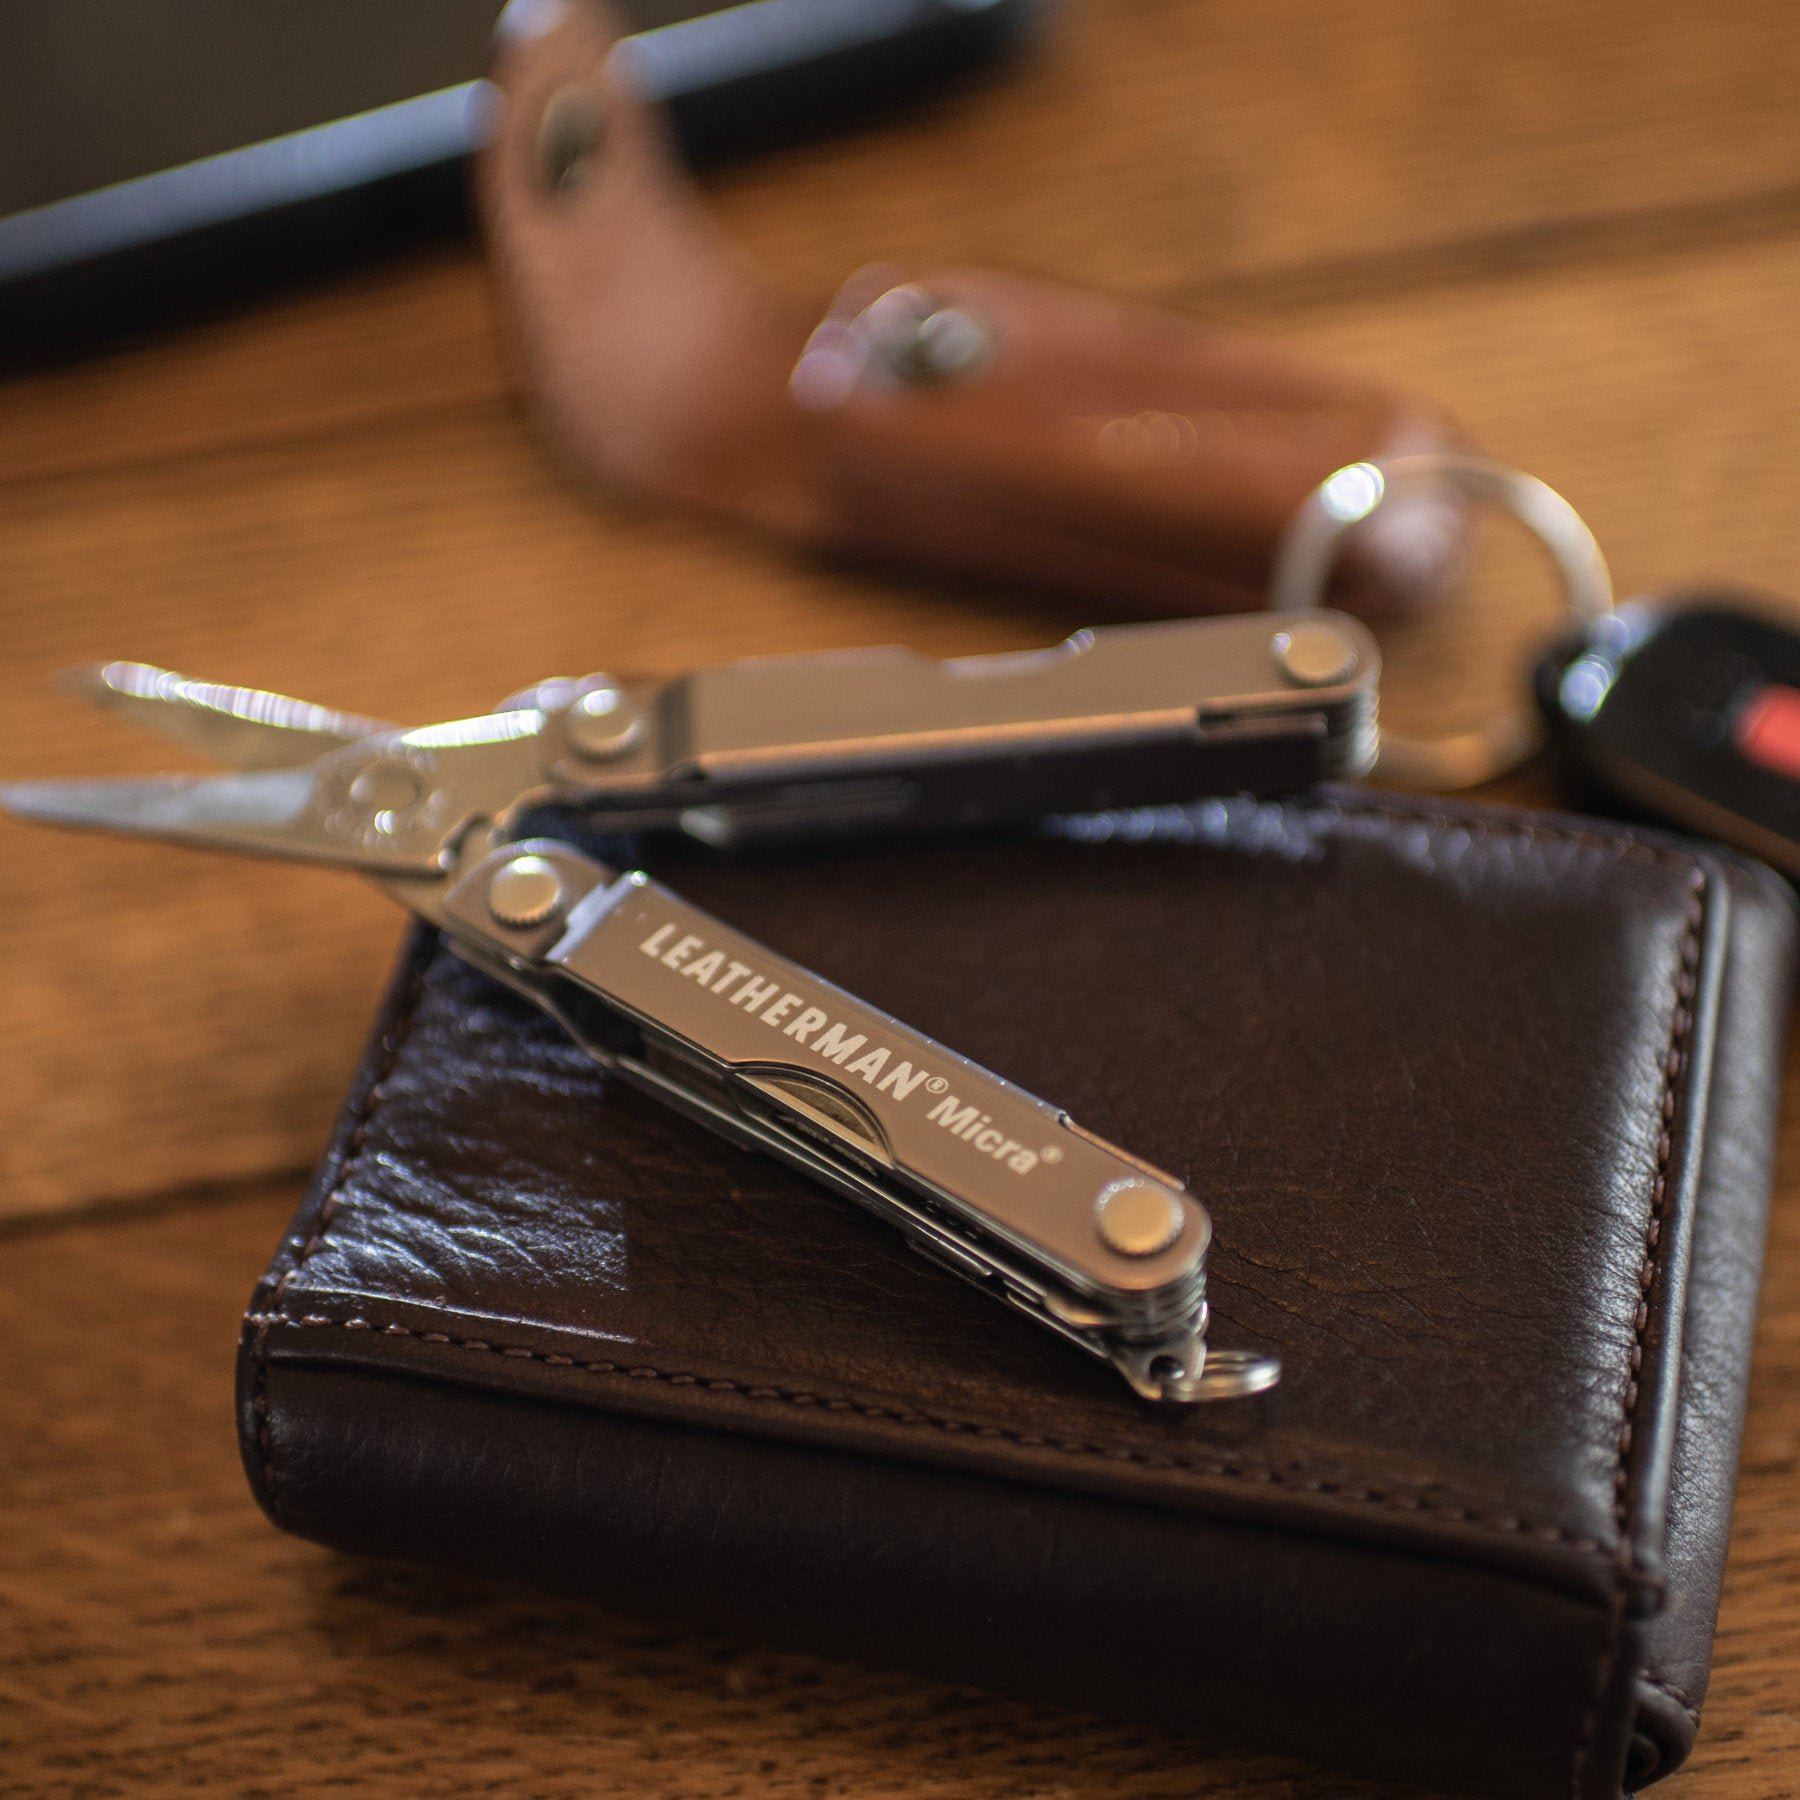 Leatherman Keychain Tools